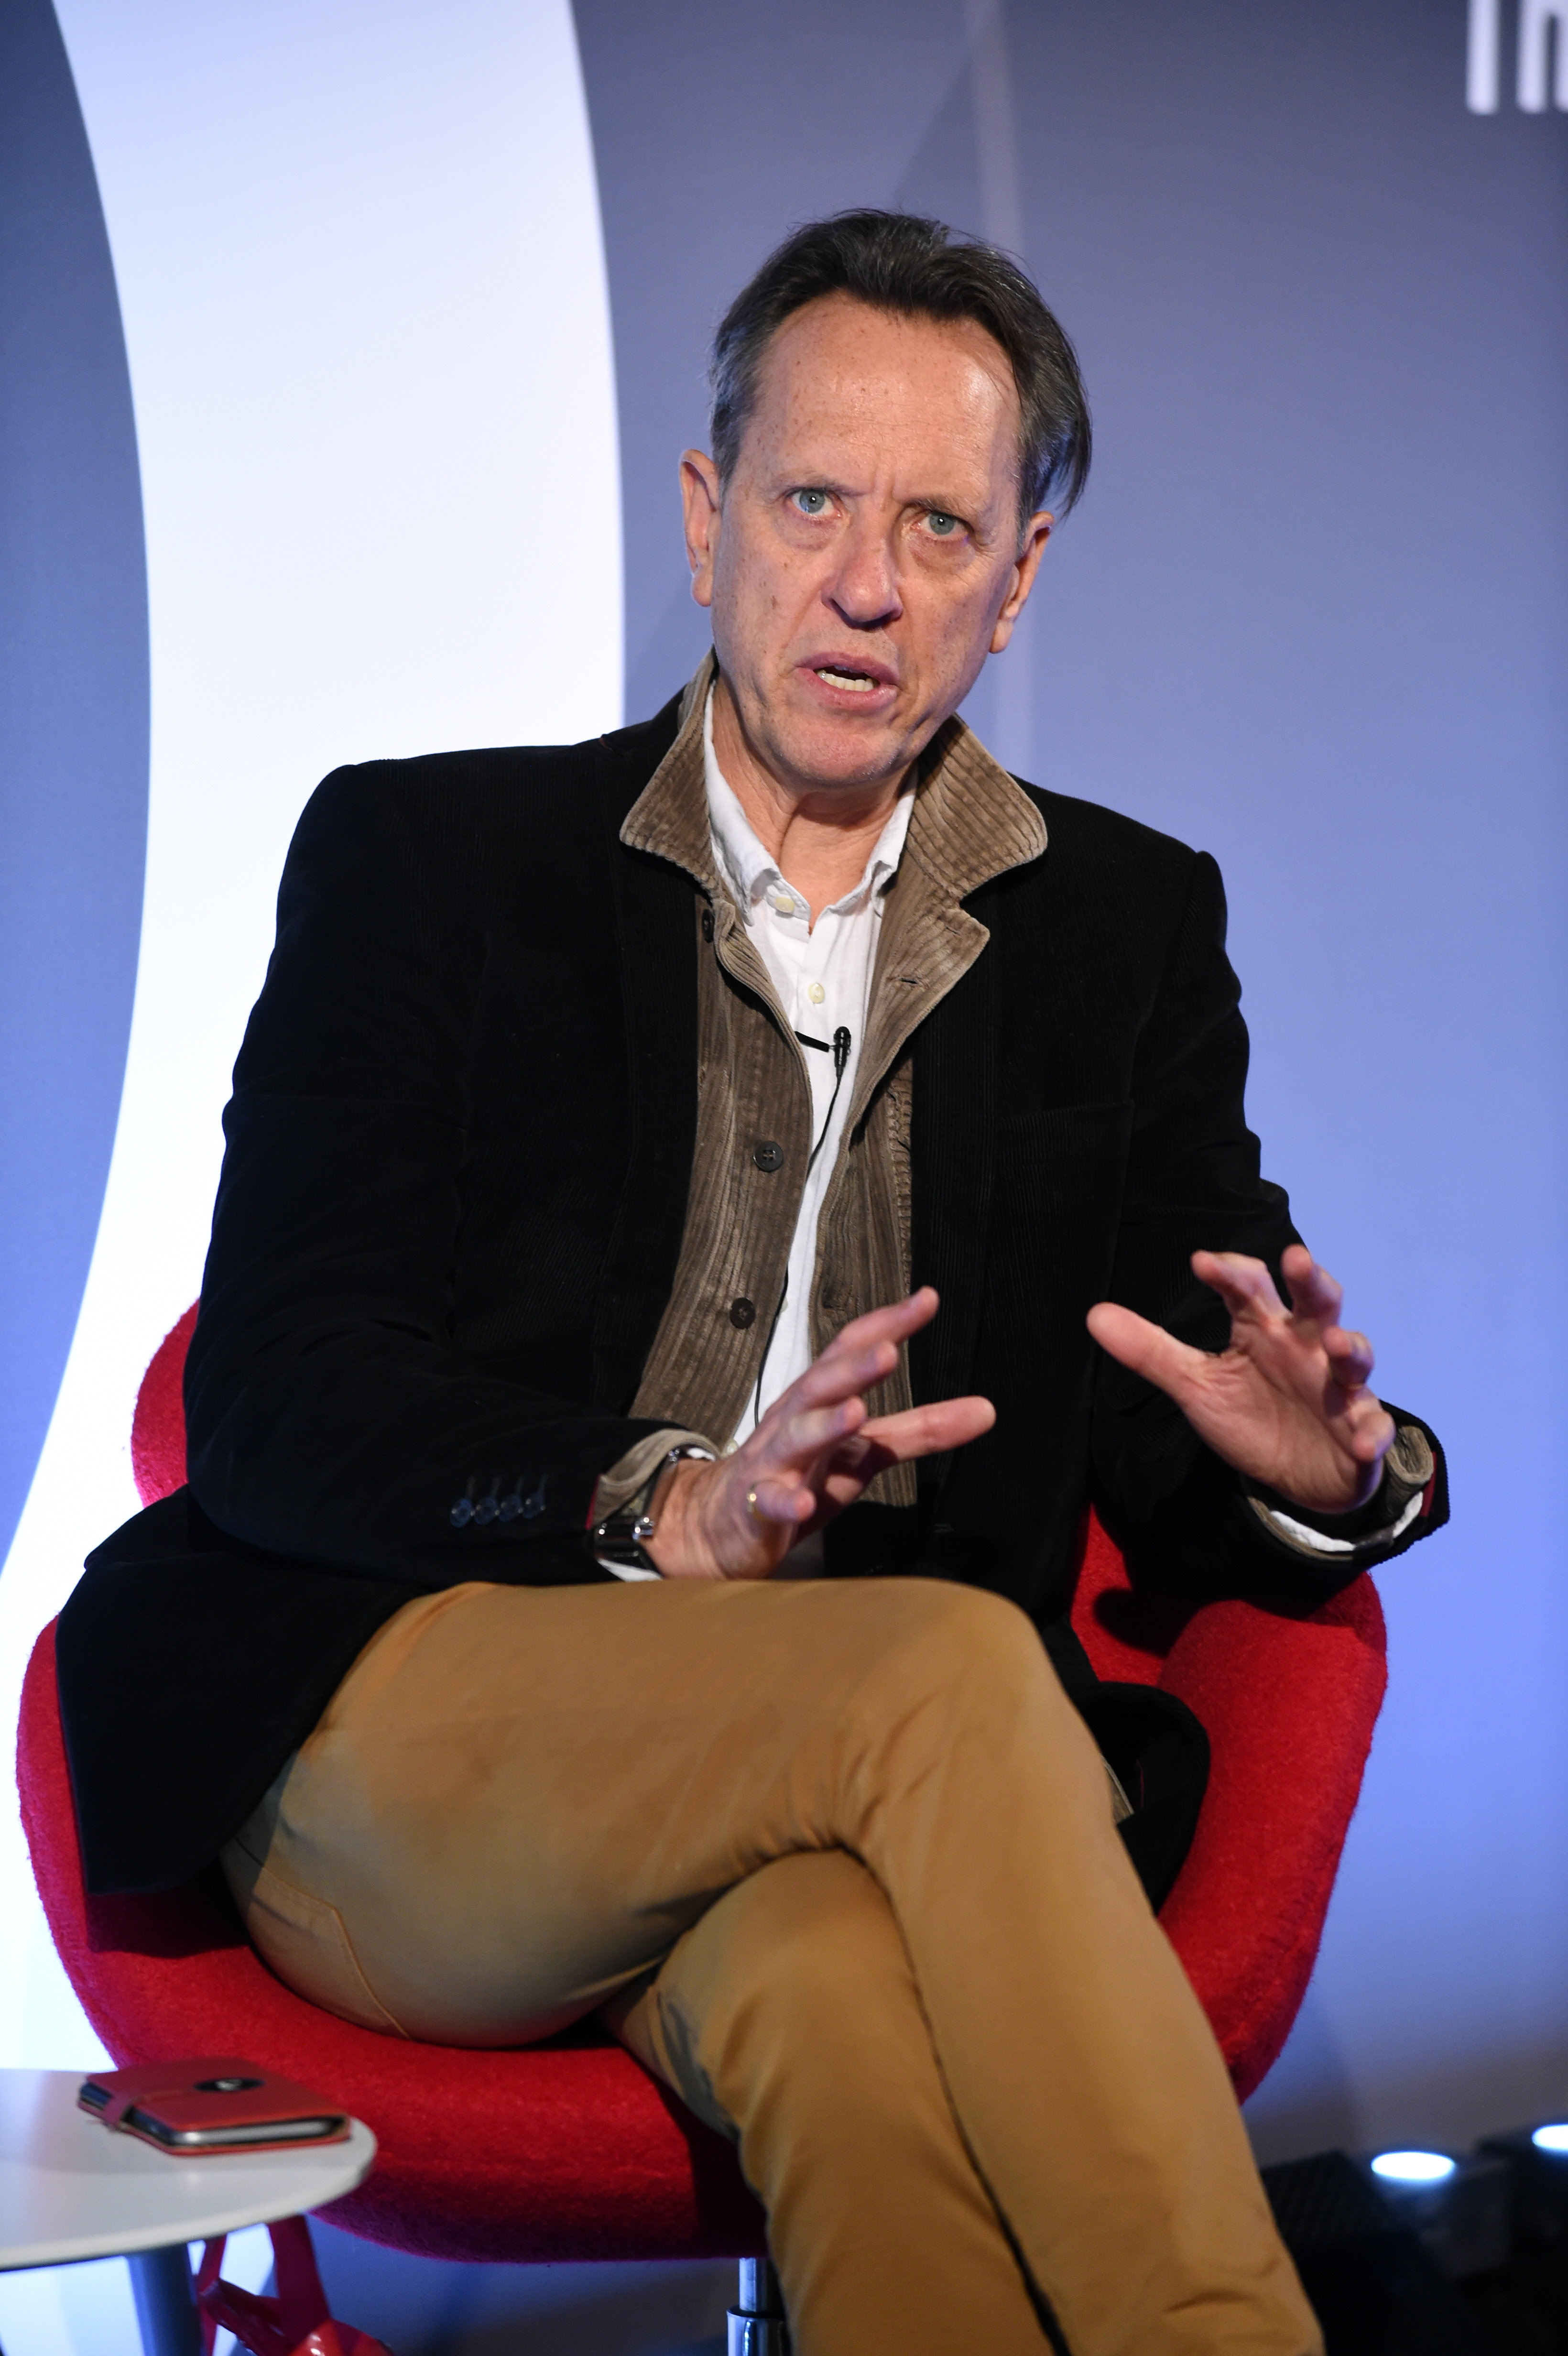 Confessions Of A Perfumed Ponce*: A Conversation with Richard E Grant seminar, Advertising Week Europe 2017, Shutterstock Stage, Picturehouse Central, London, UK